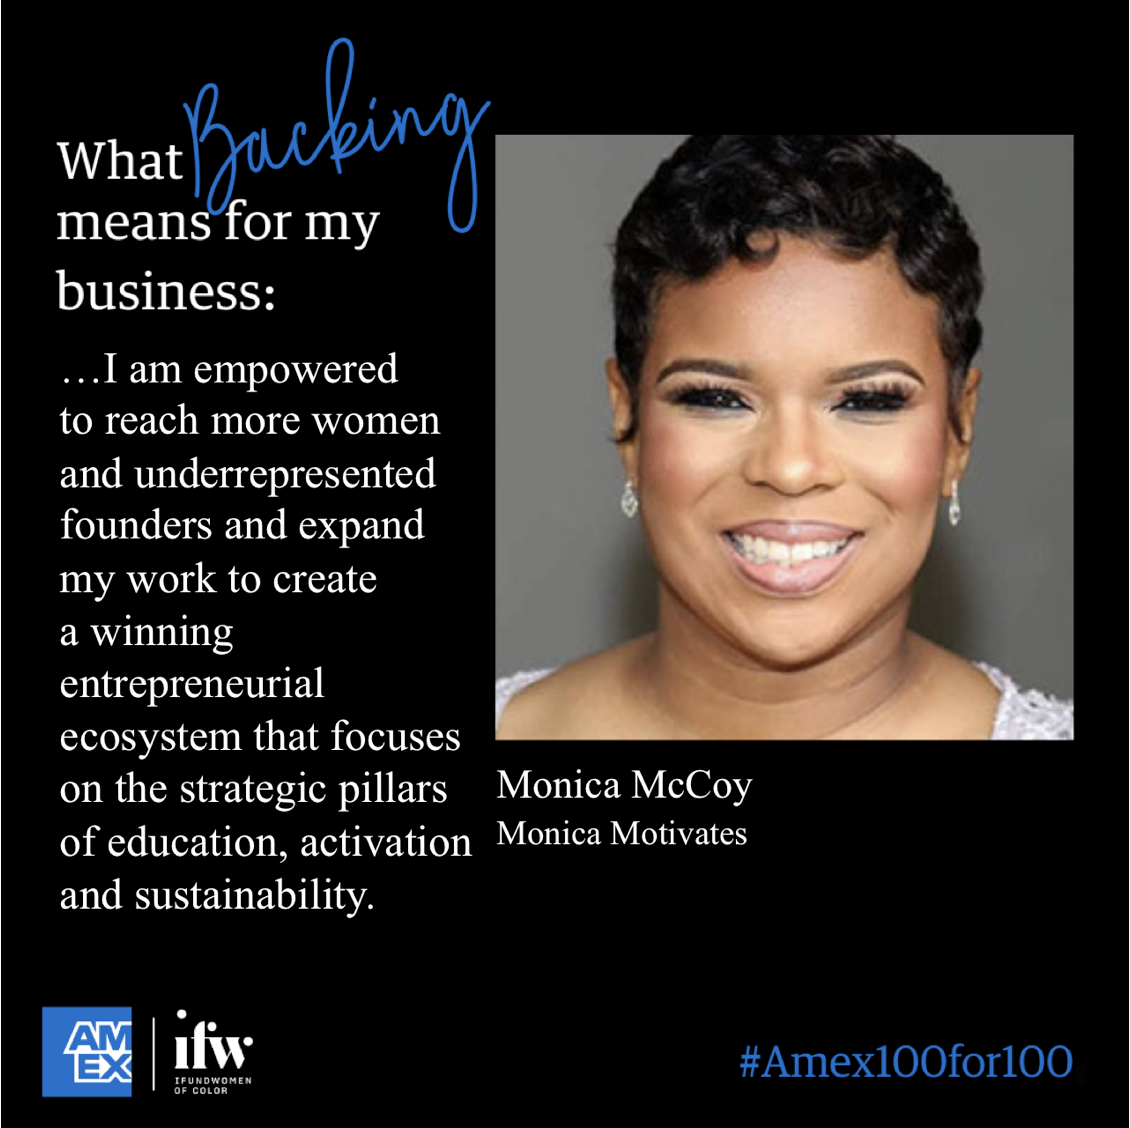 AMX100for100-Monica McCoy